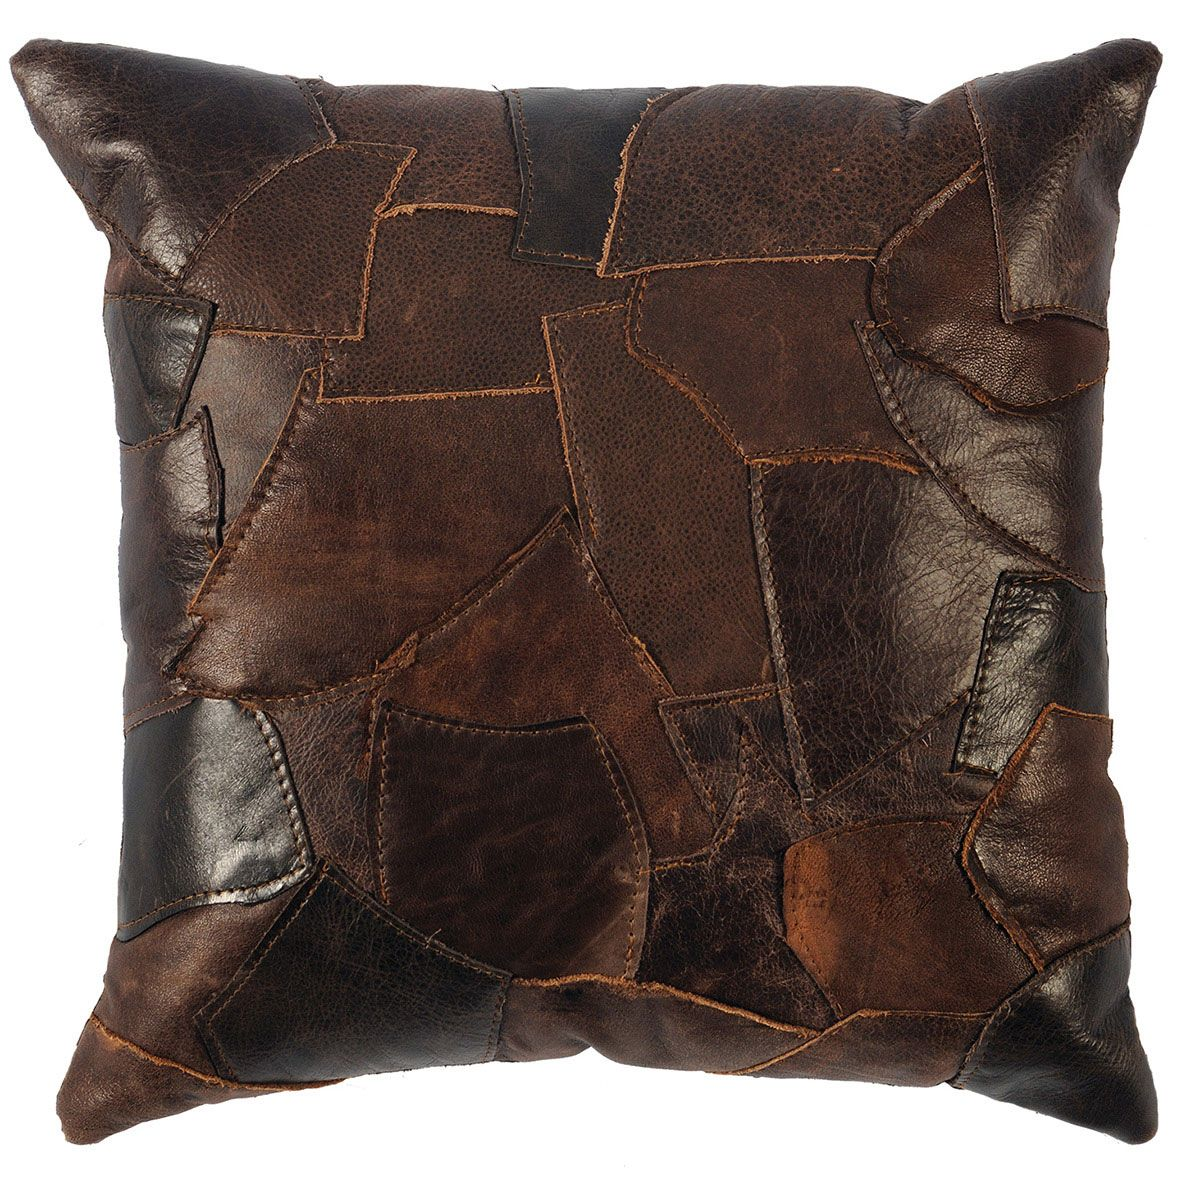 Patchwork Brown Leather with Fabric Back Pillow